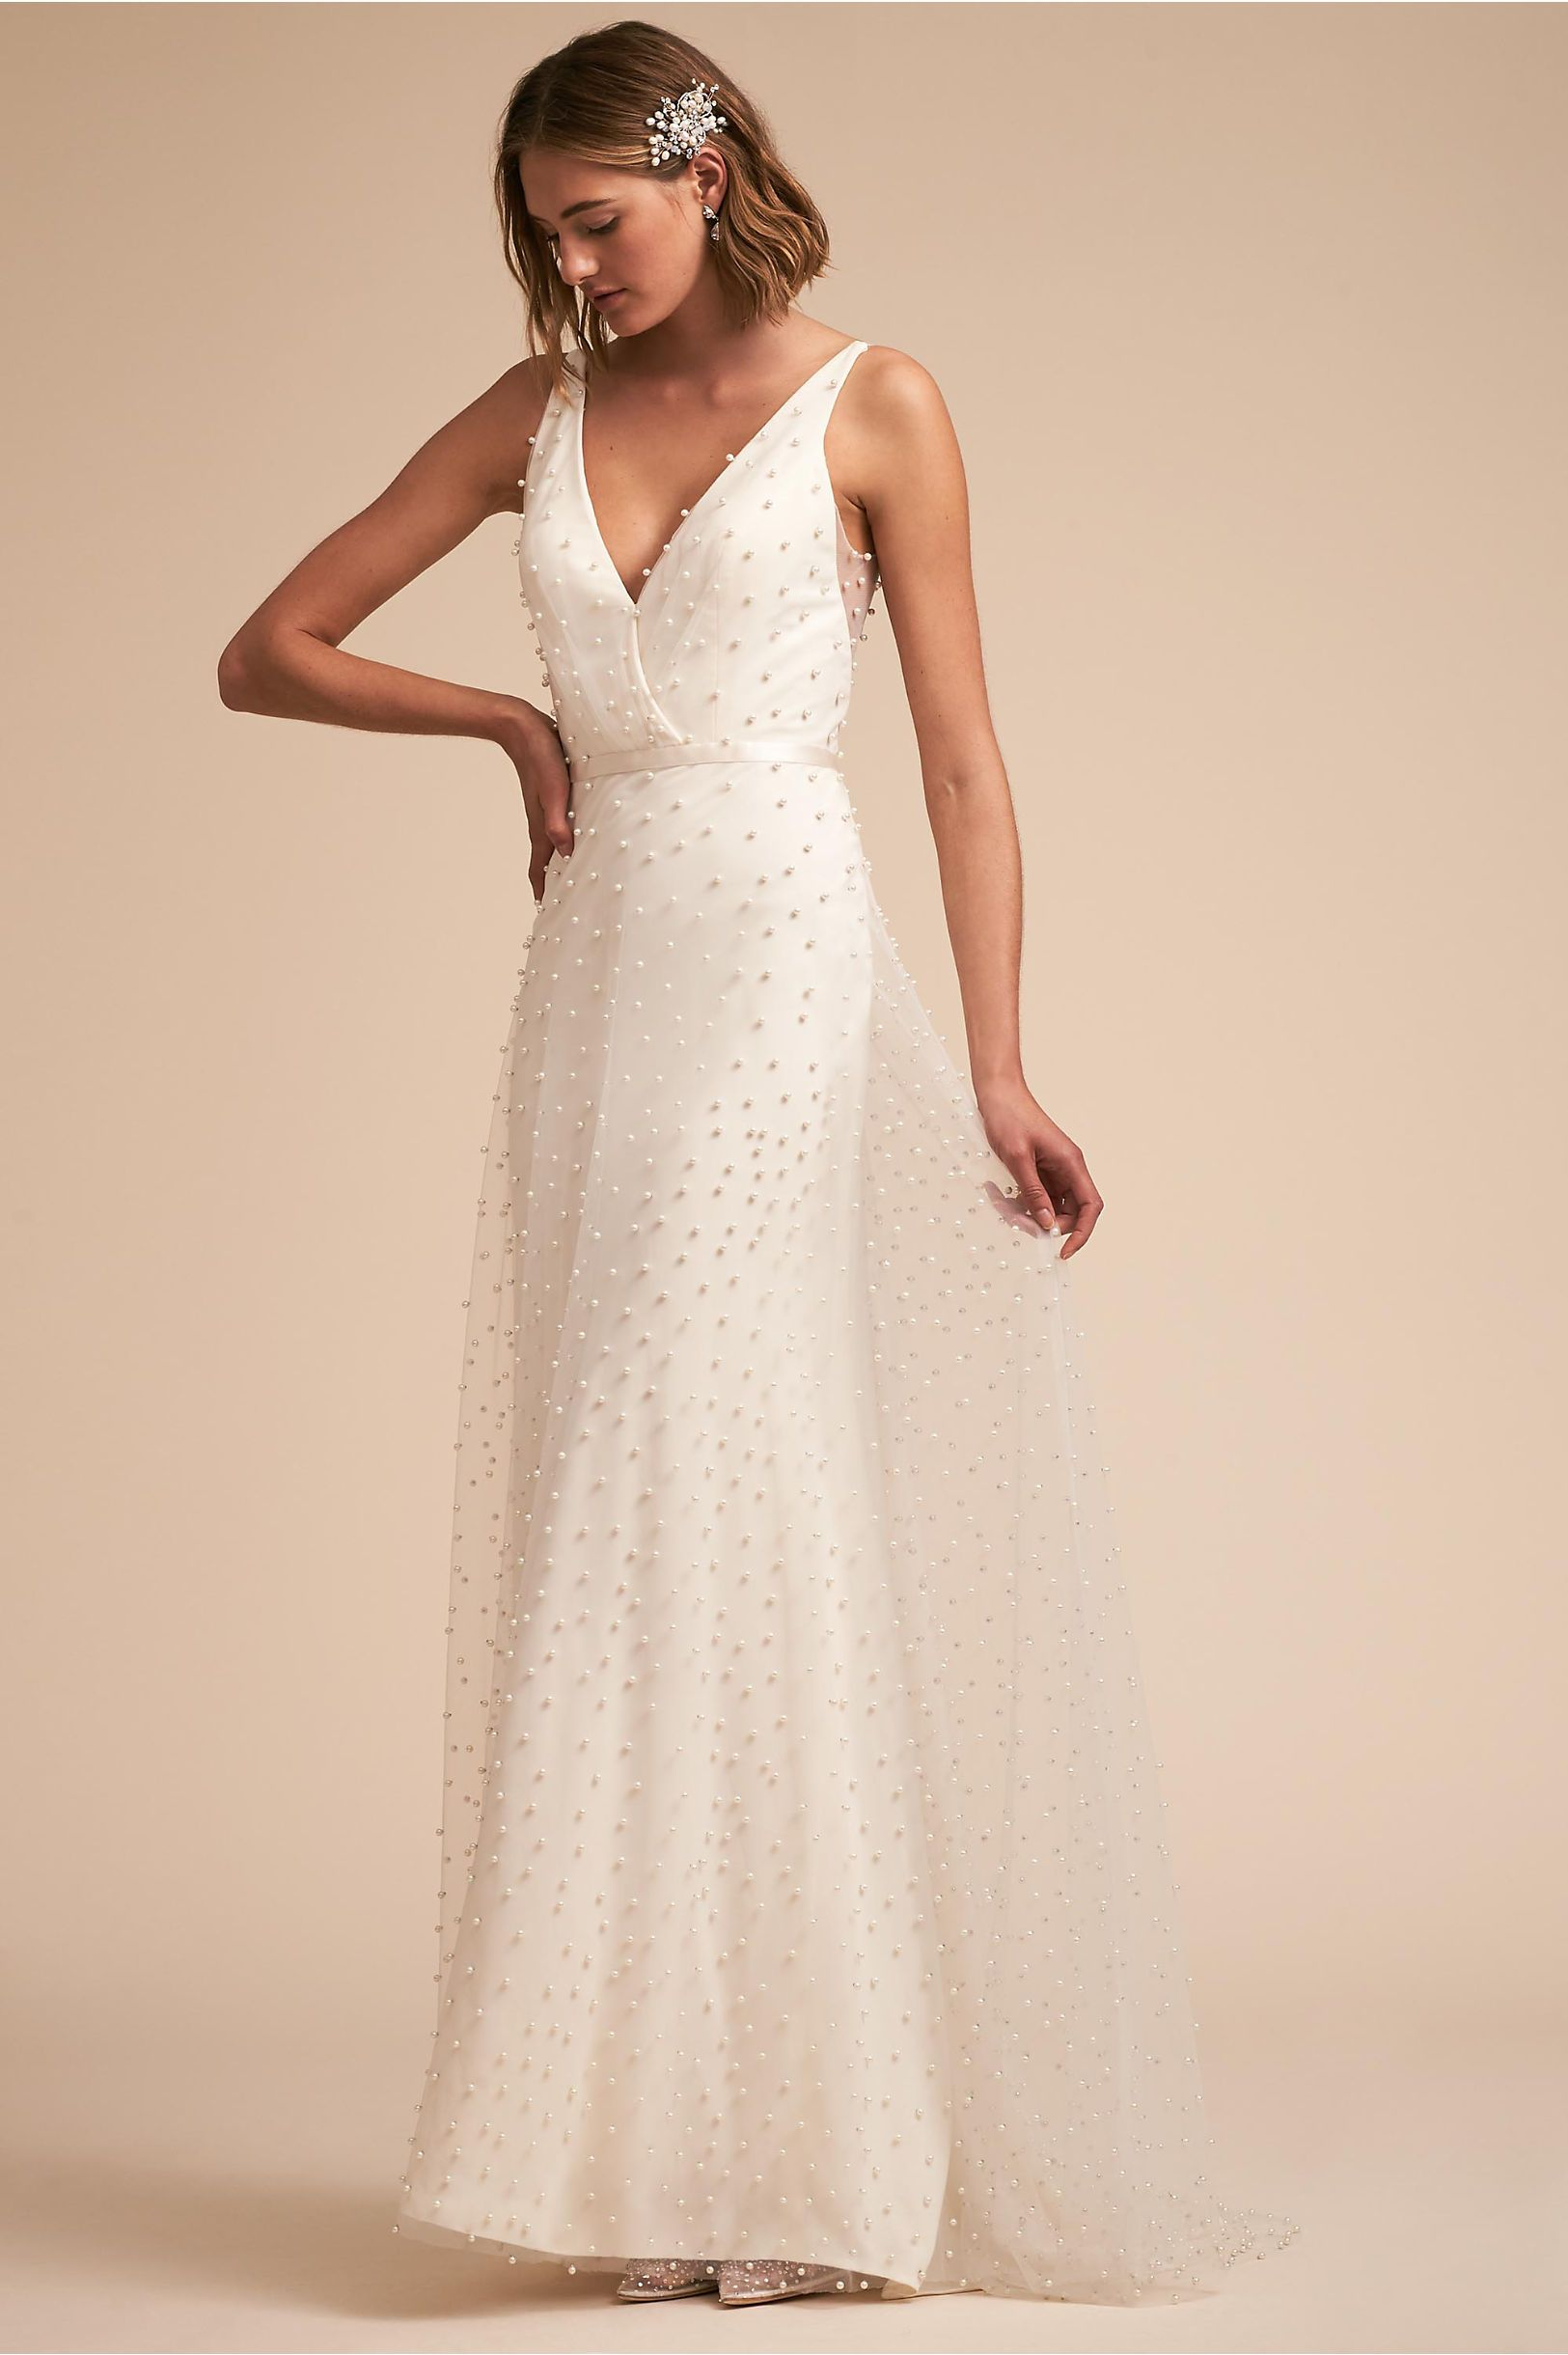 Wedding Dress Bhldn Monroe Gown By Bhldn Search Our Photo Gallery For Pictures Of Wedding Dresses By In 2020 Bhldn Wedding Dress Wedding Dresses Wedding Dress Topper